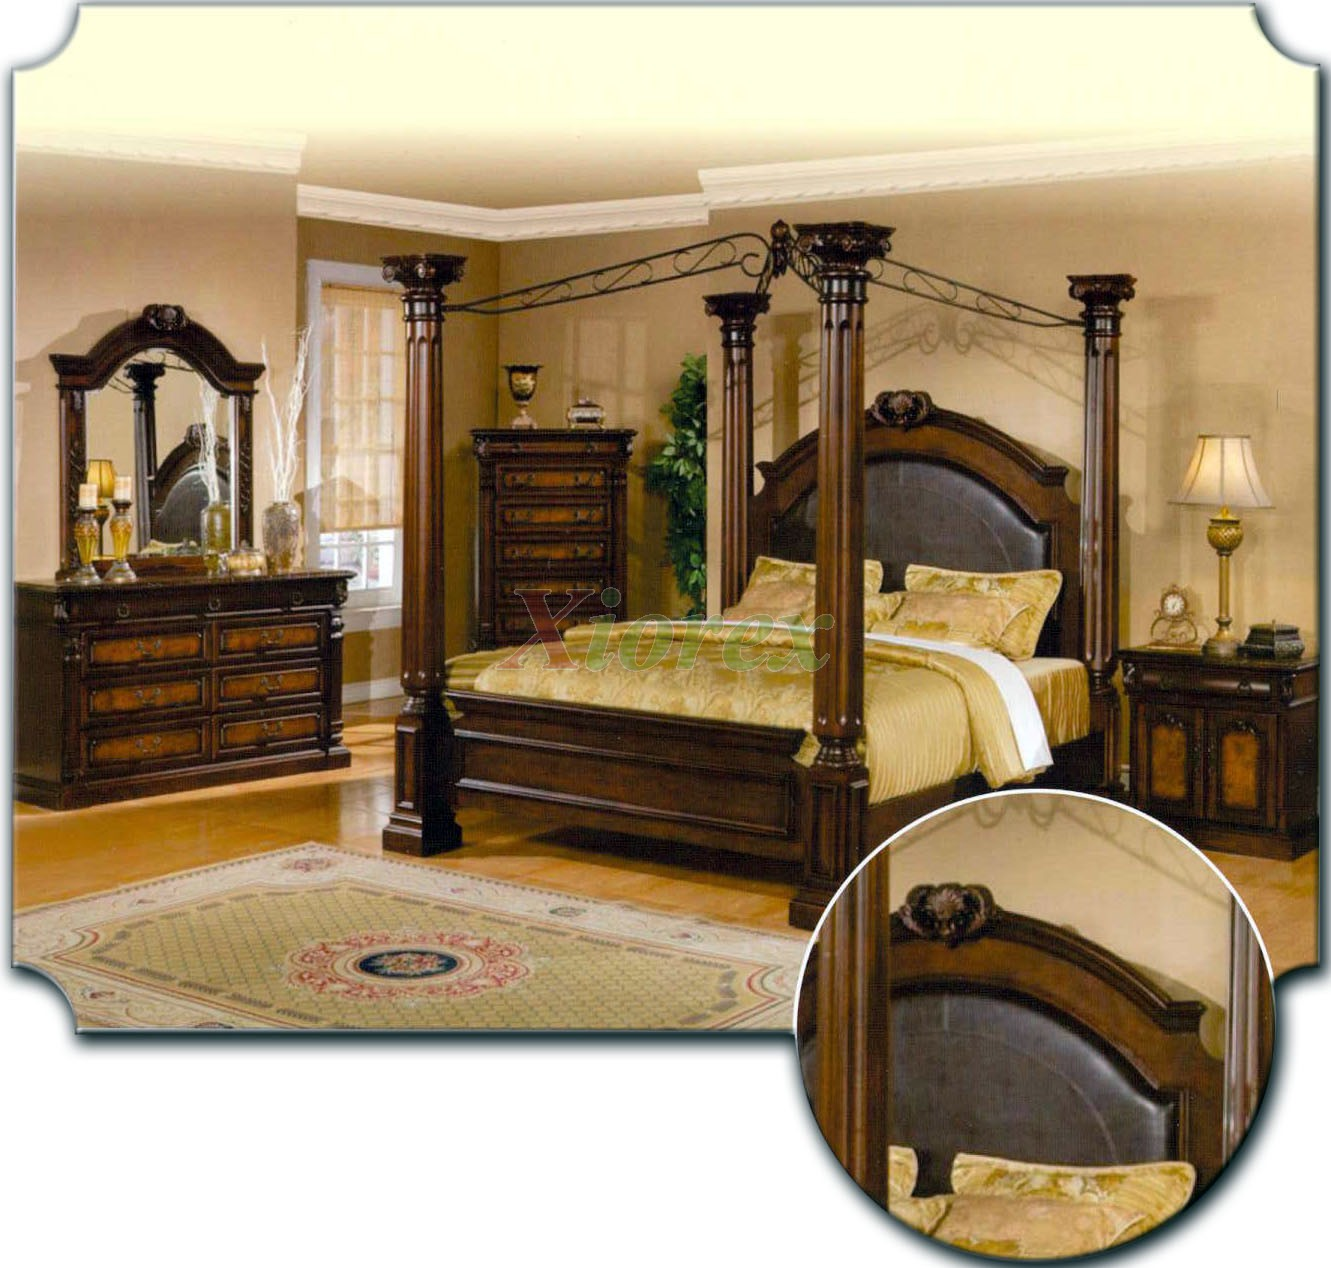 Fabulous Canopy Bedroom Set Leather Headboard 1331 x 1268 · 274 kB · jpeg